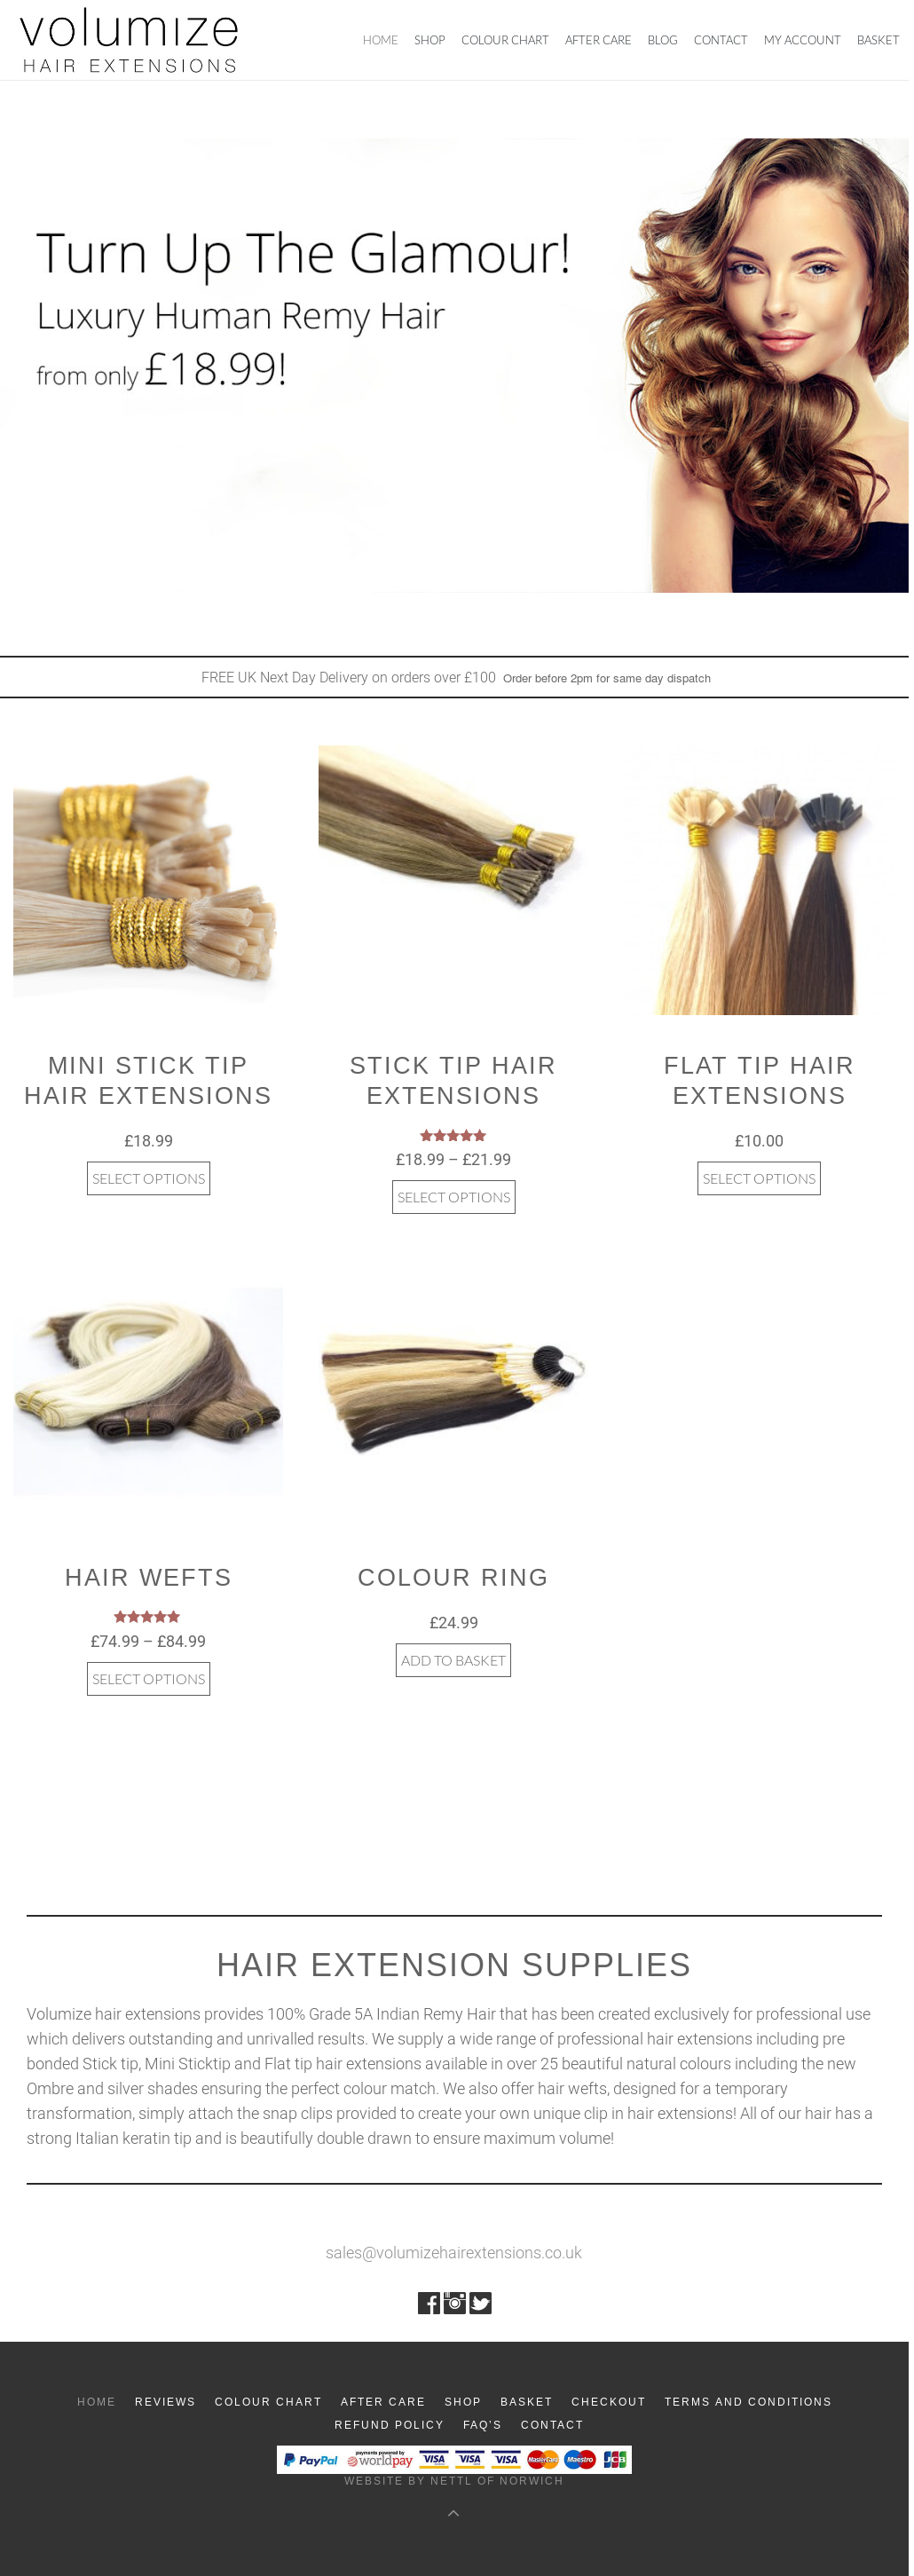 Volumize Hair Extension Supplies Competitors Revenue And Employees